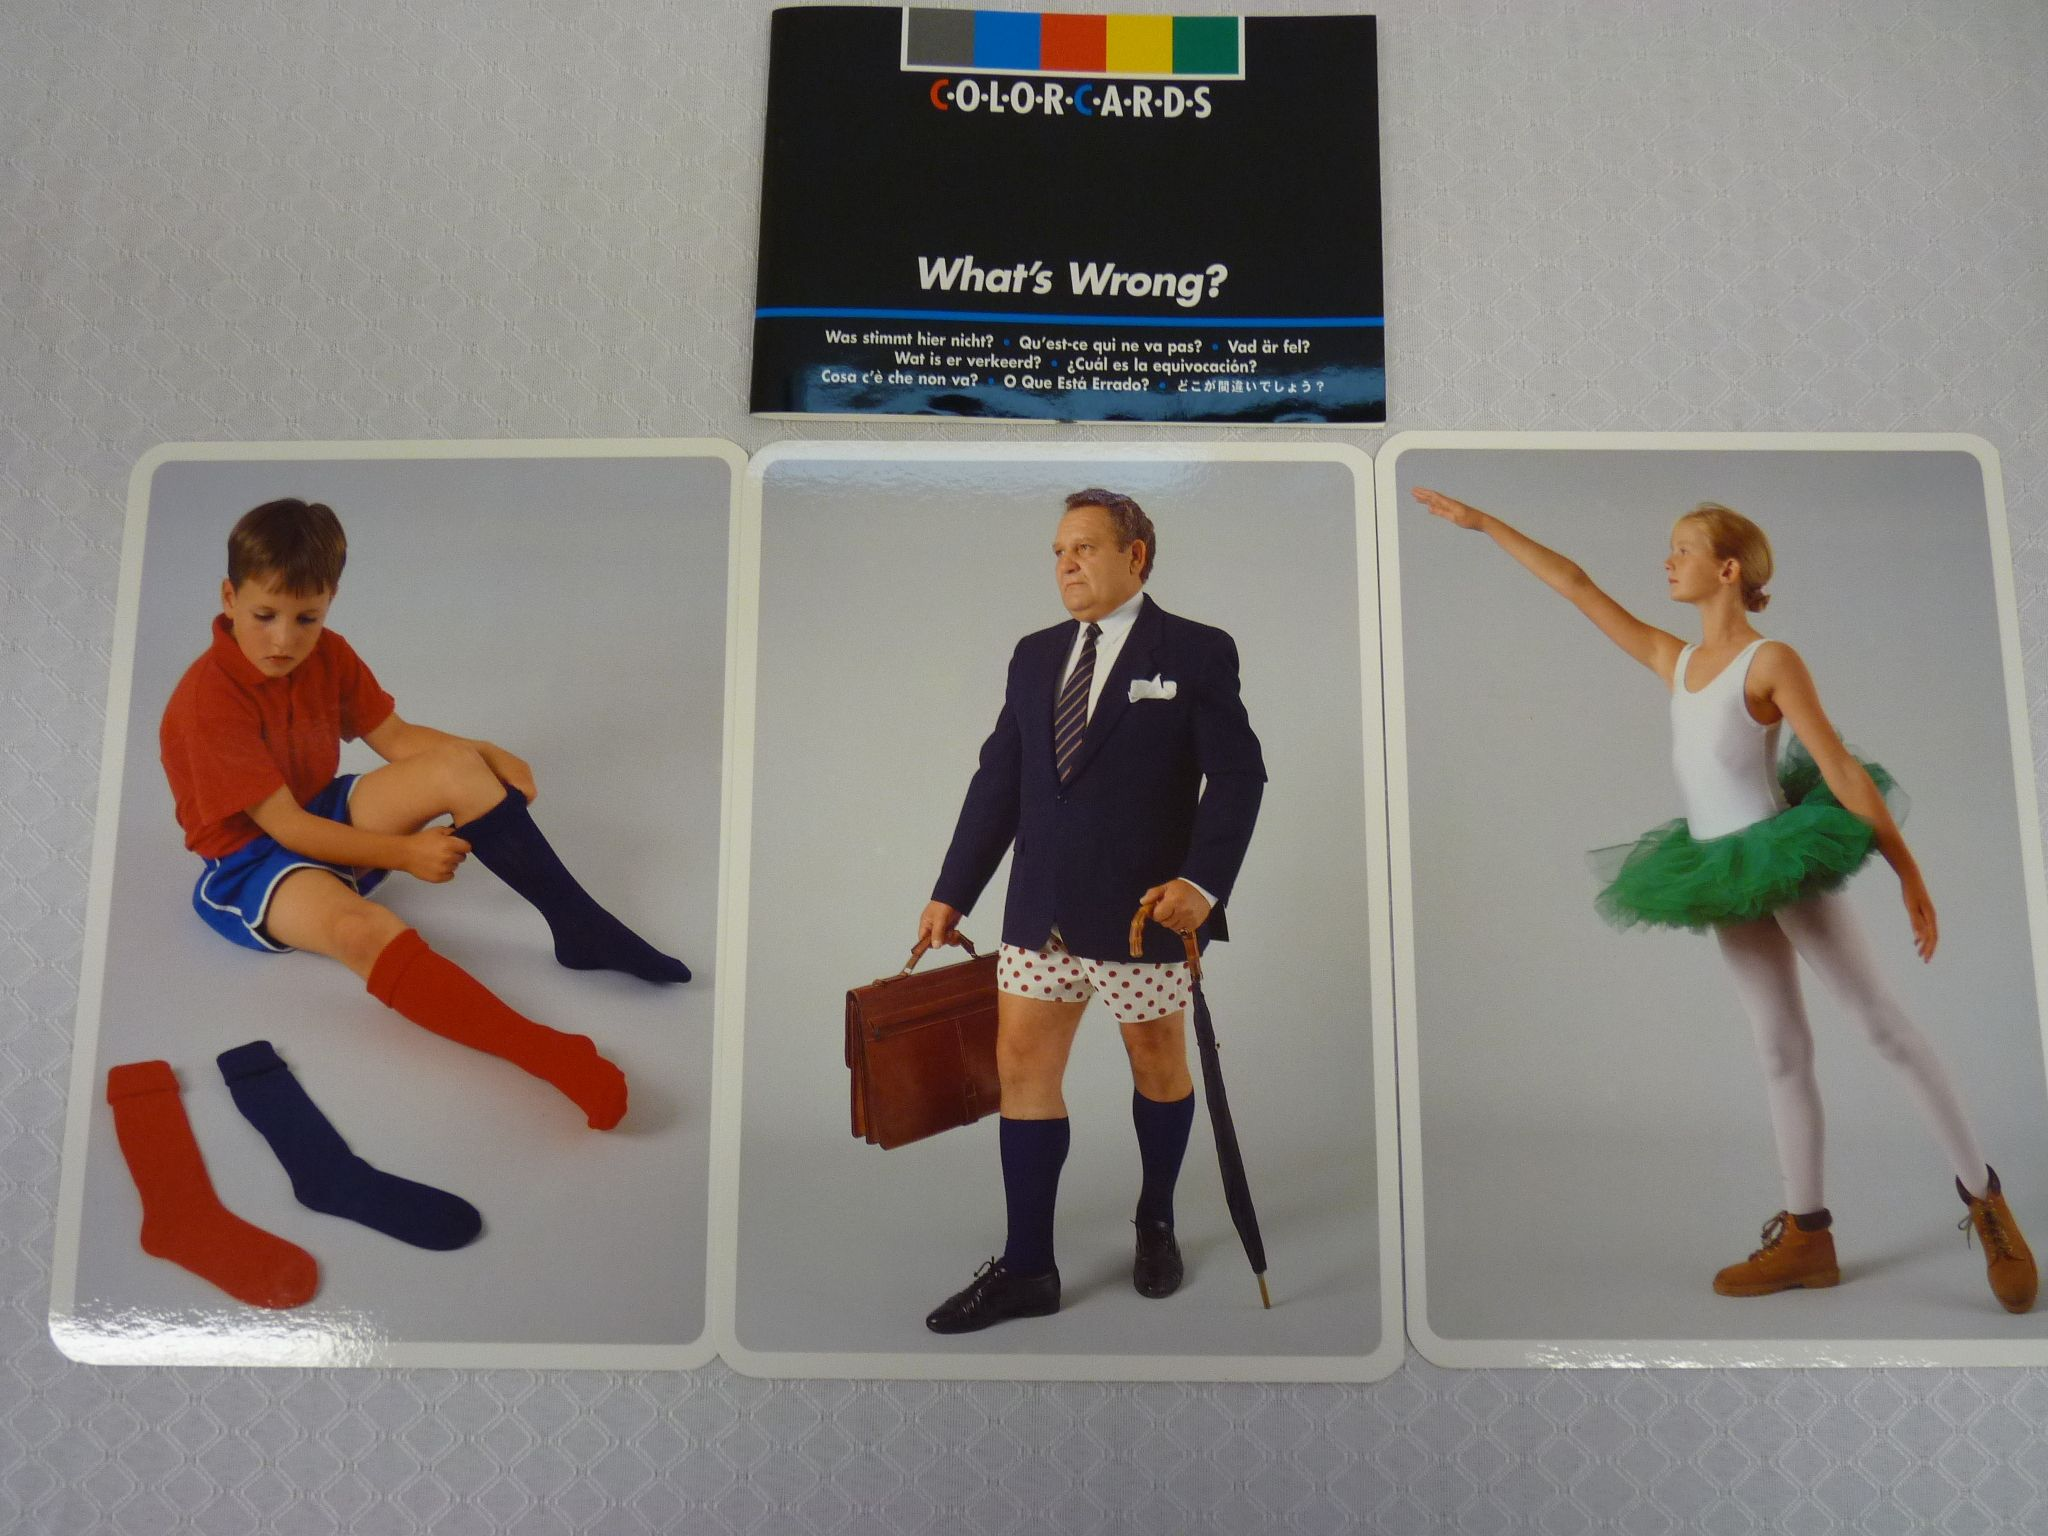 titre  colorcards   what u0026 39 s wrong  cote  jeu 3107 comprend 48 cartes